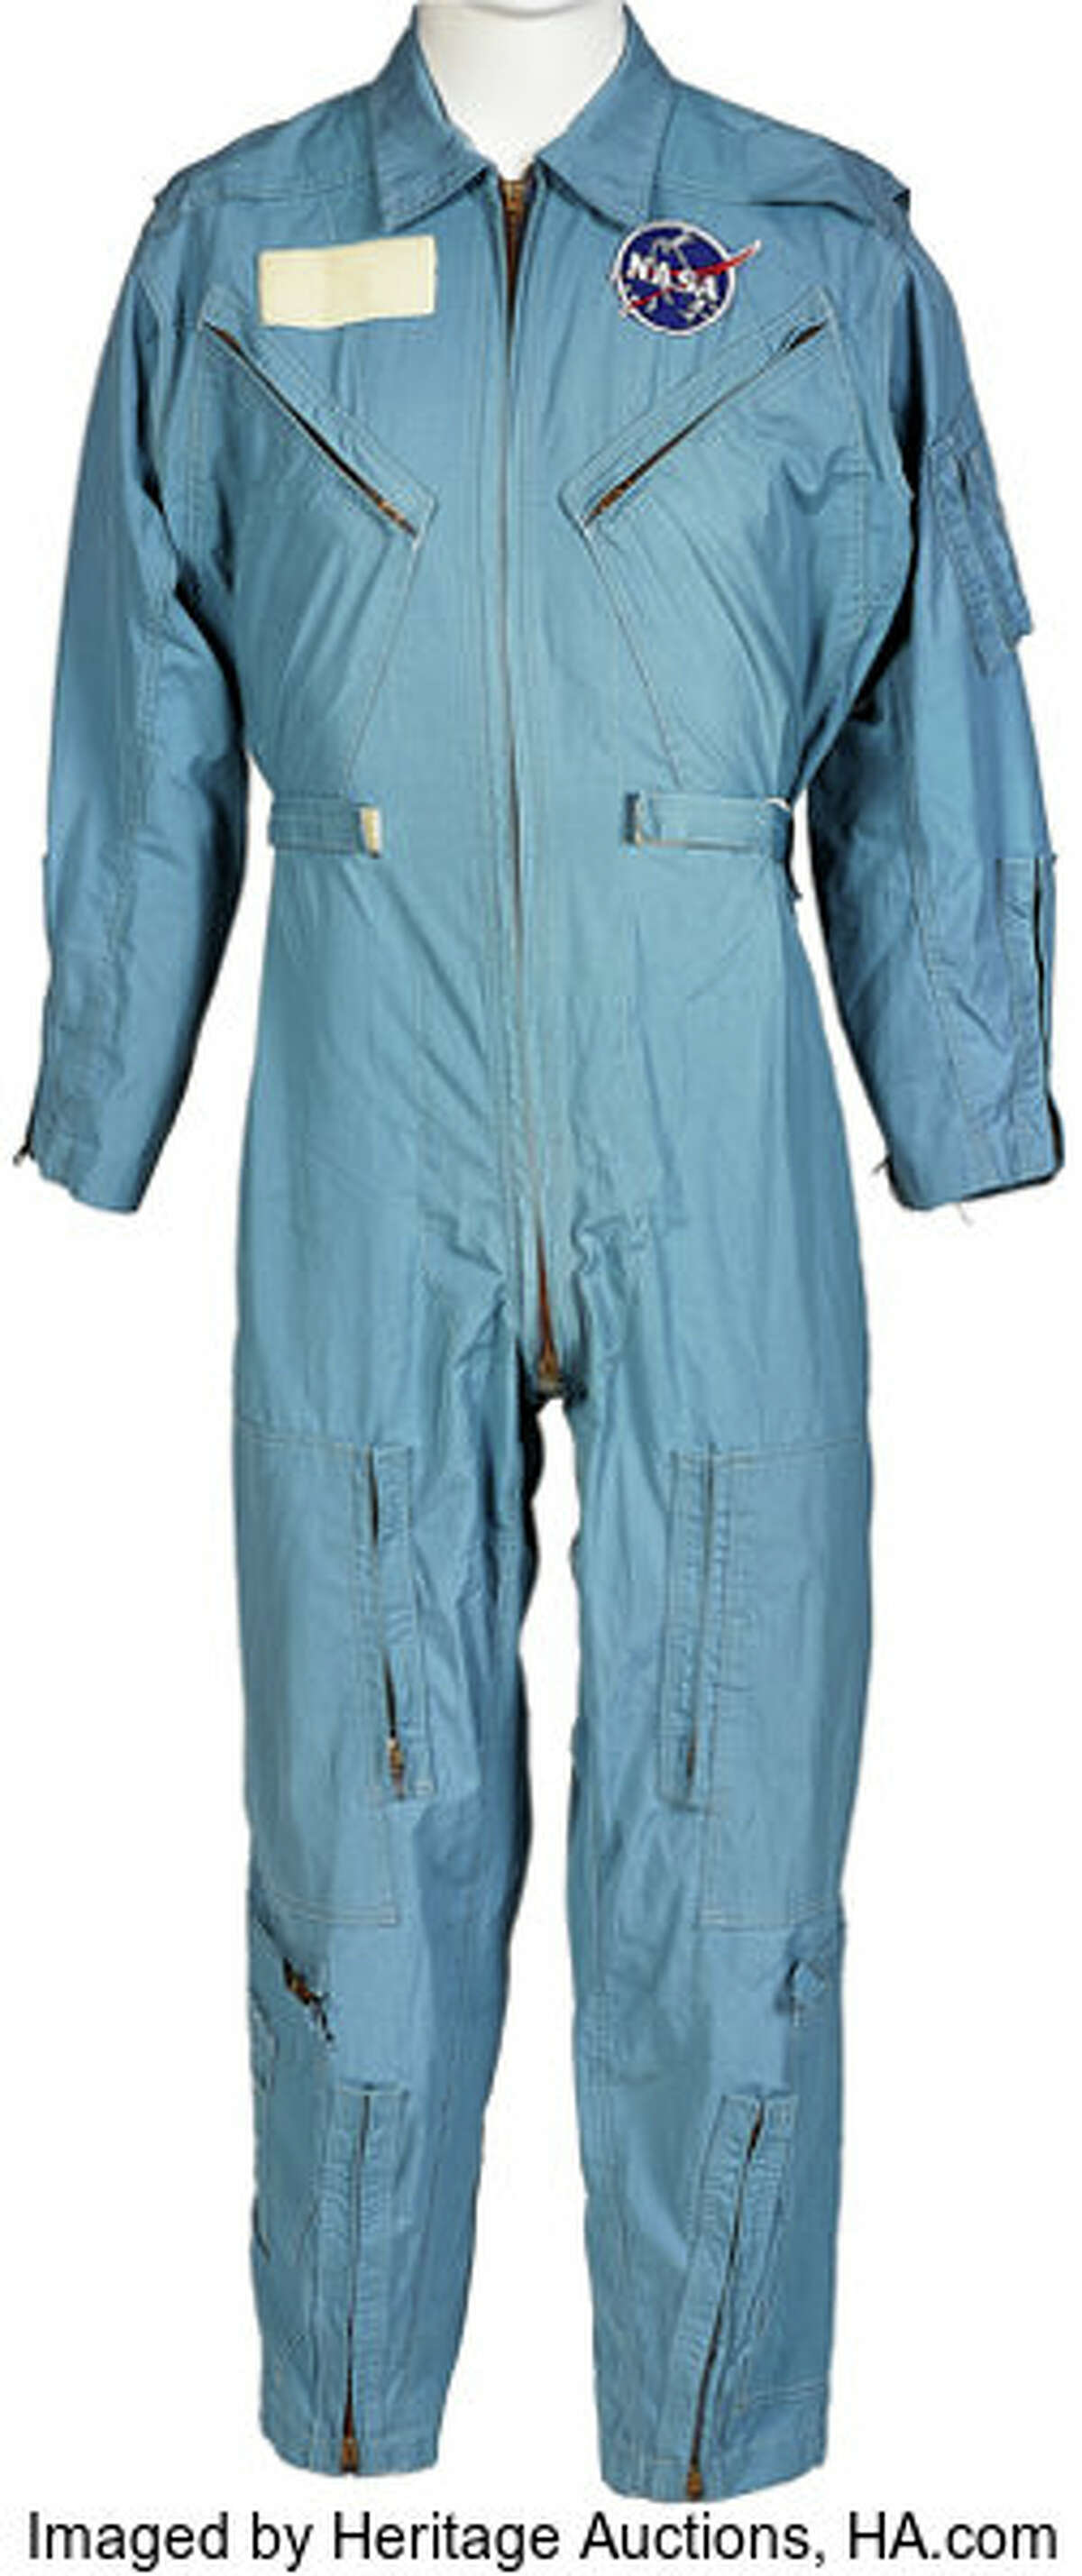 Neil Armstrong's personally owned and worn early-Apollo era flight suit with type 3 NASA vector patch is among dozens of items up for auction until Thursday. Starting/early bids: $40,000 >>> See more items up for auction